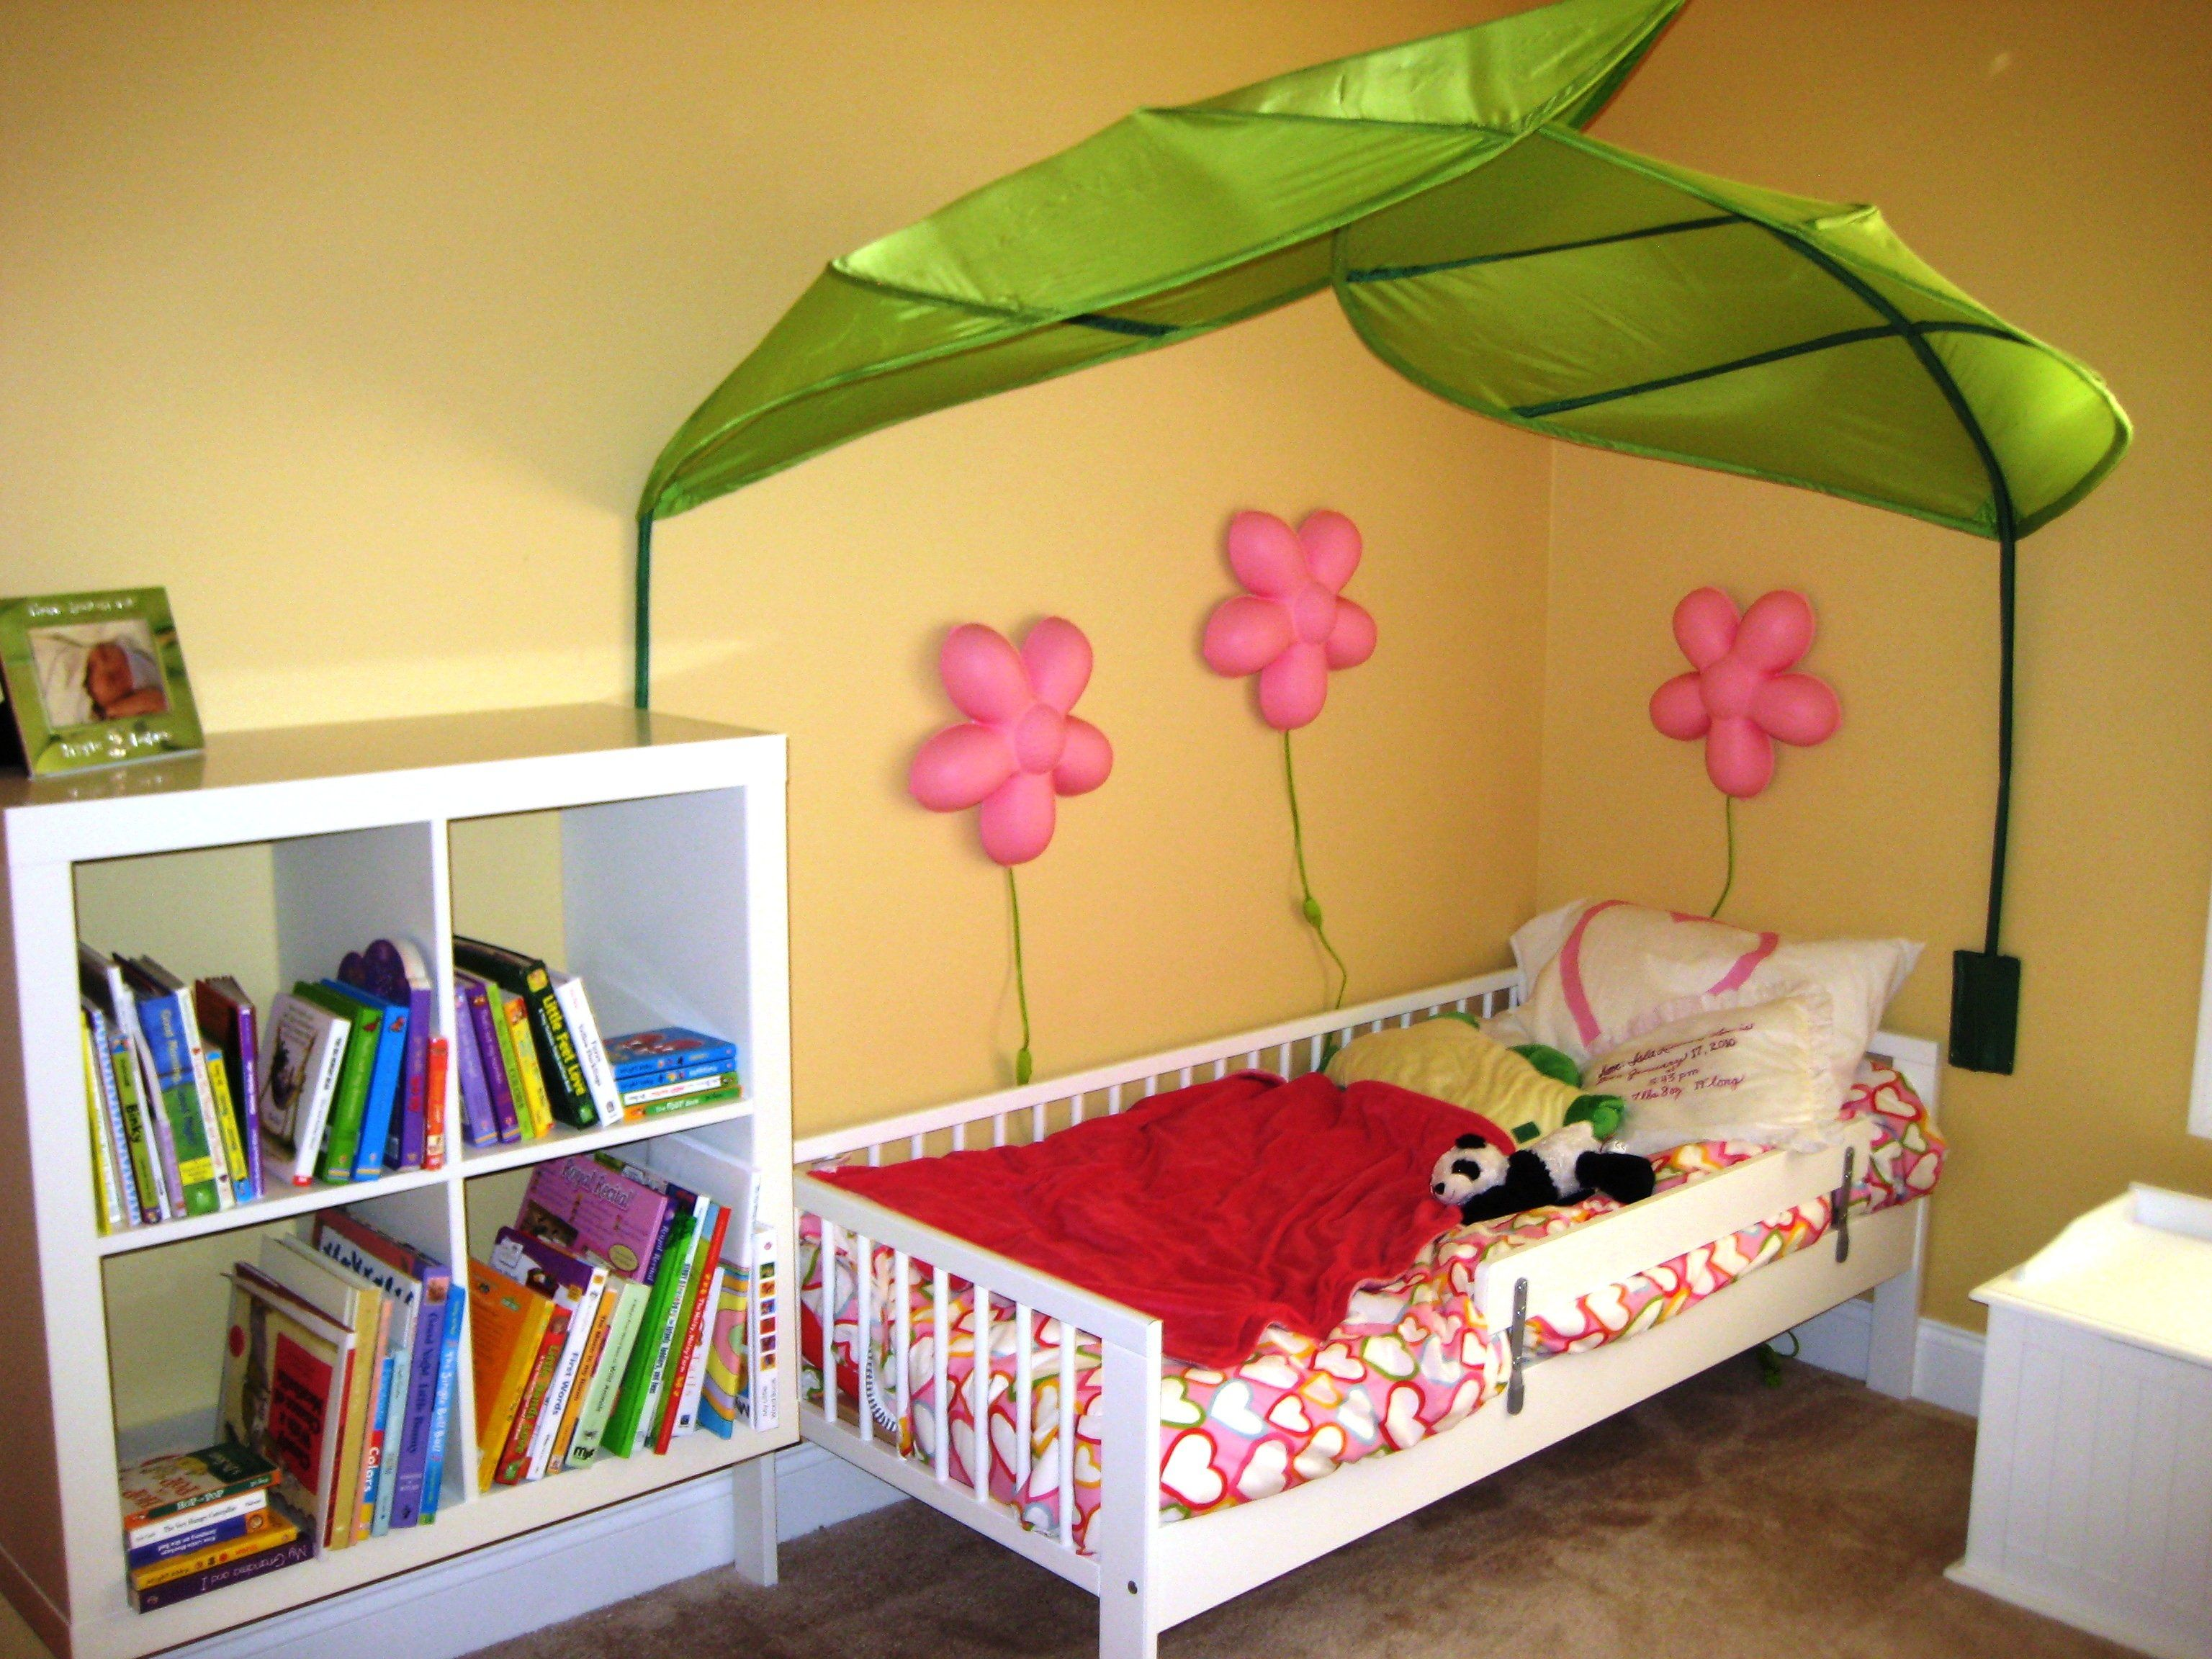 Pin by Naomy Ordonez on Small space for girl. | Pinterest | Big girl ...